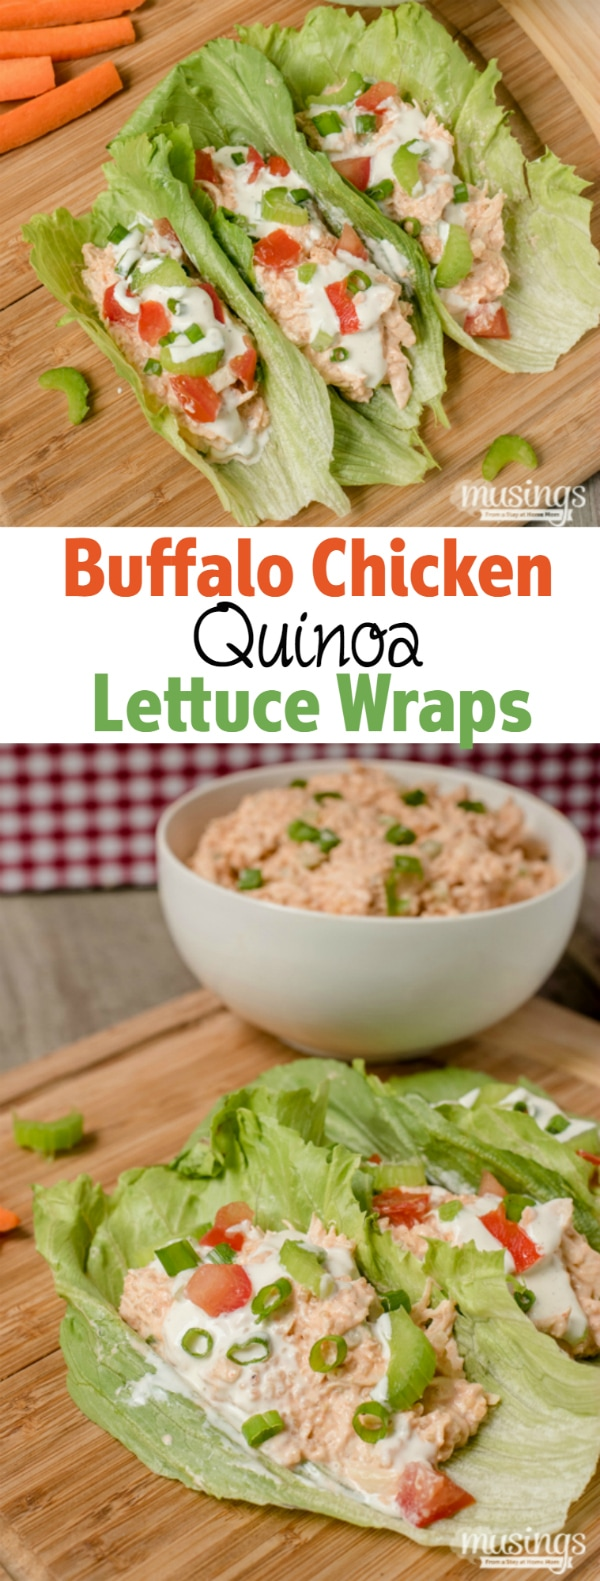 Buffalo Chicken Quinoa Lettuce Wraps are a perfect lunch or quick and easy dinner; you'll love how spicy and tangy this deliciously low carb recipe is!